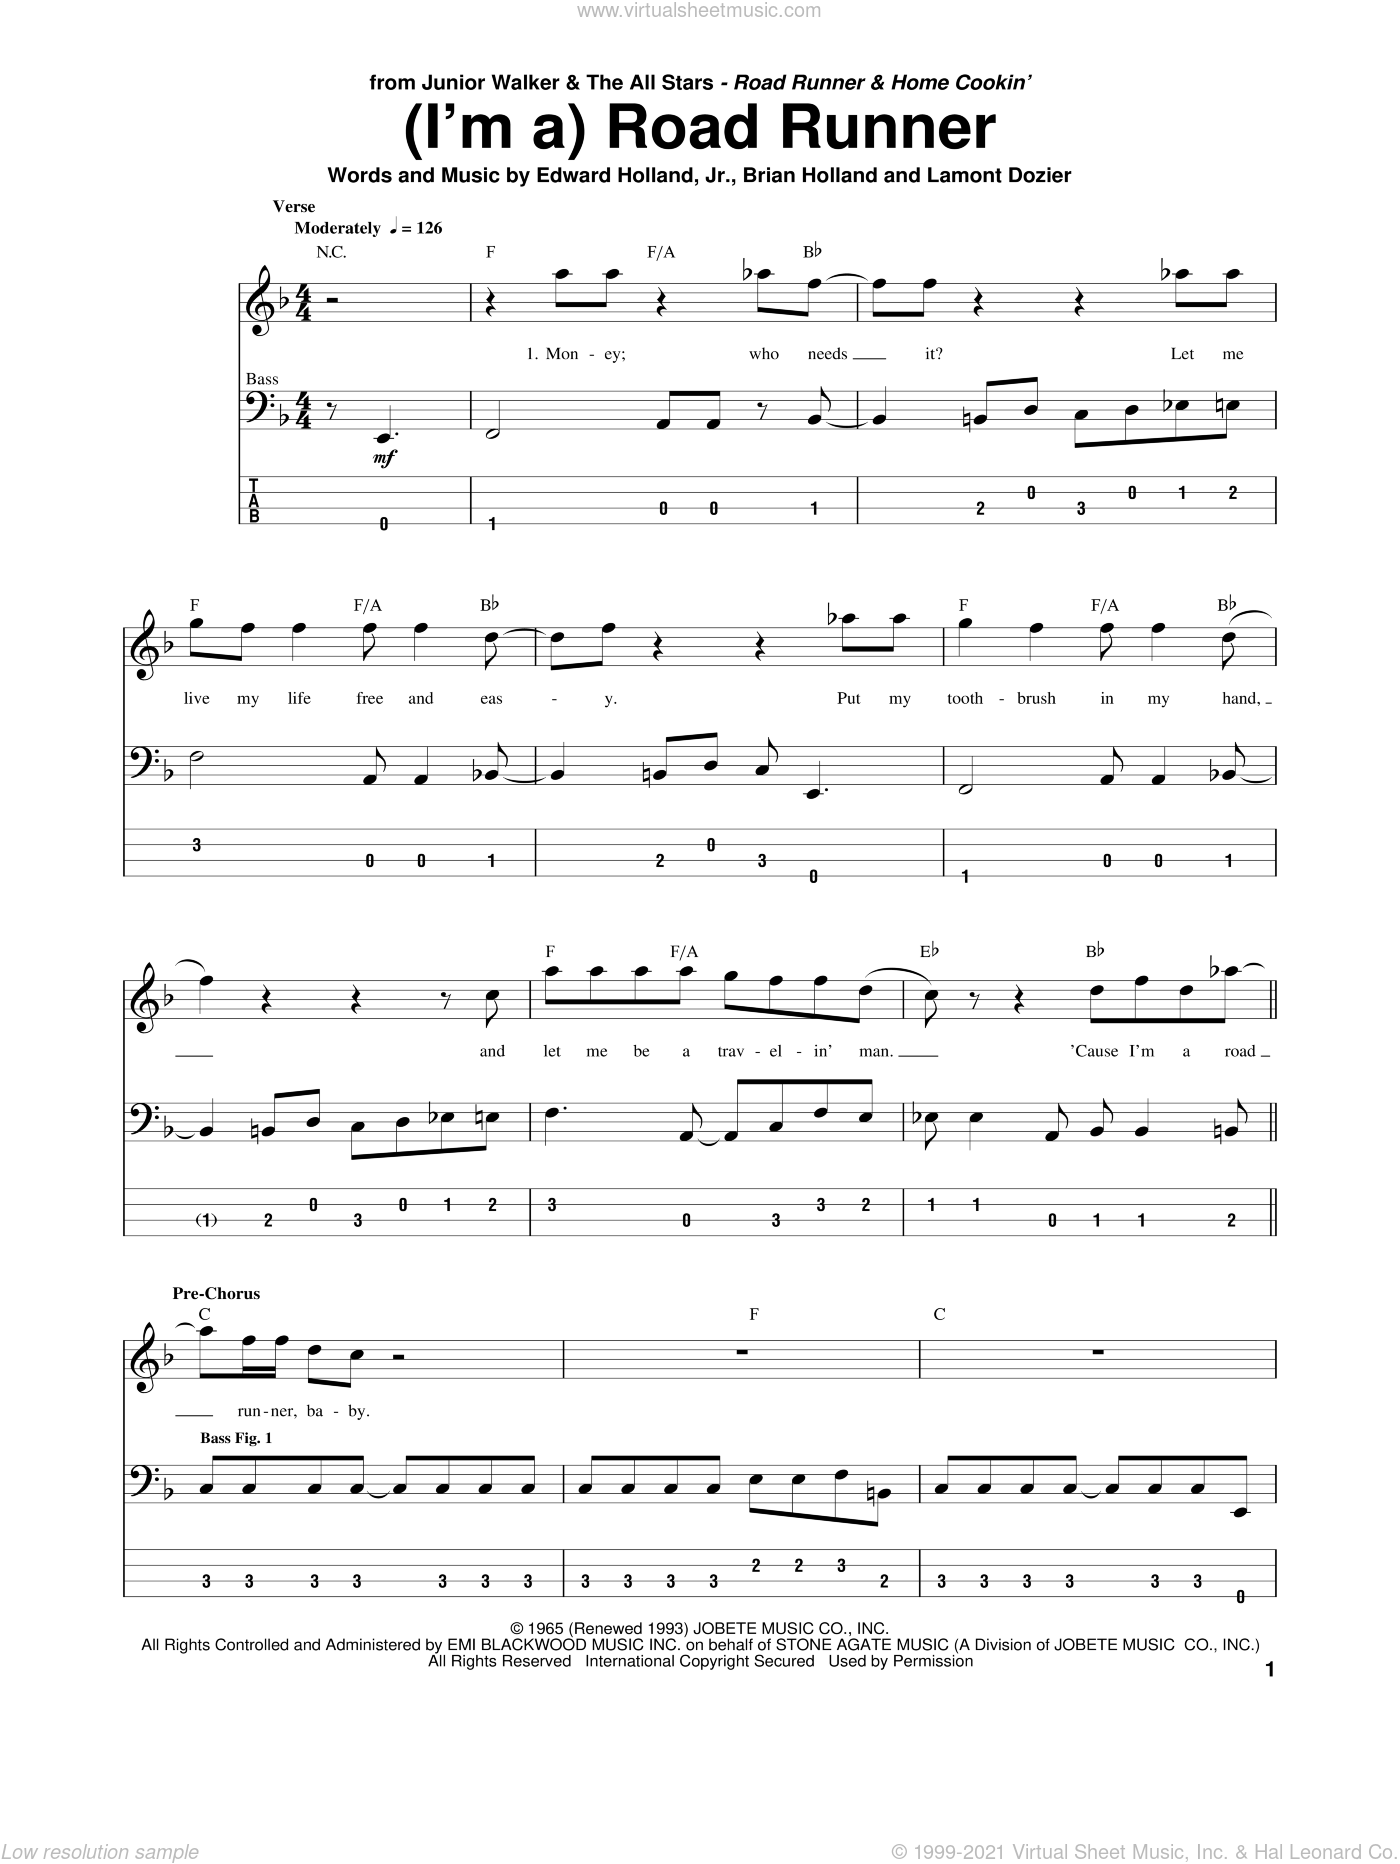 (I'm A) Road Runner sheet music for bass (tablature) (bass guitar) by Junior Walker & the All Stars, Brian Holland, Edward Holland, Jr. and Lamont Dozier, intermediate skill level